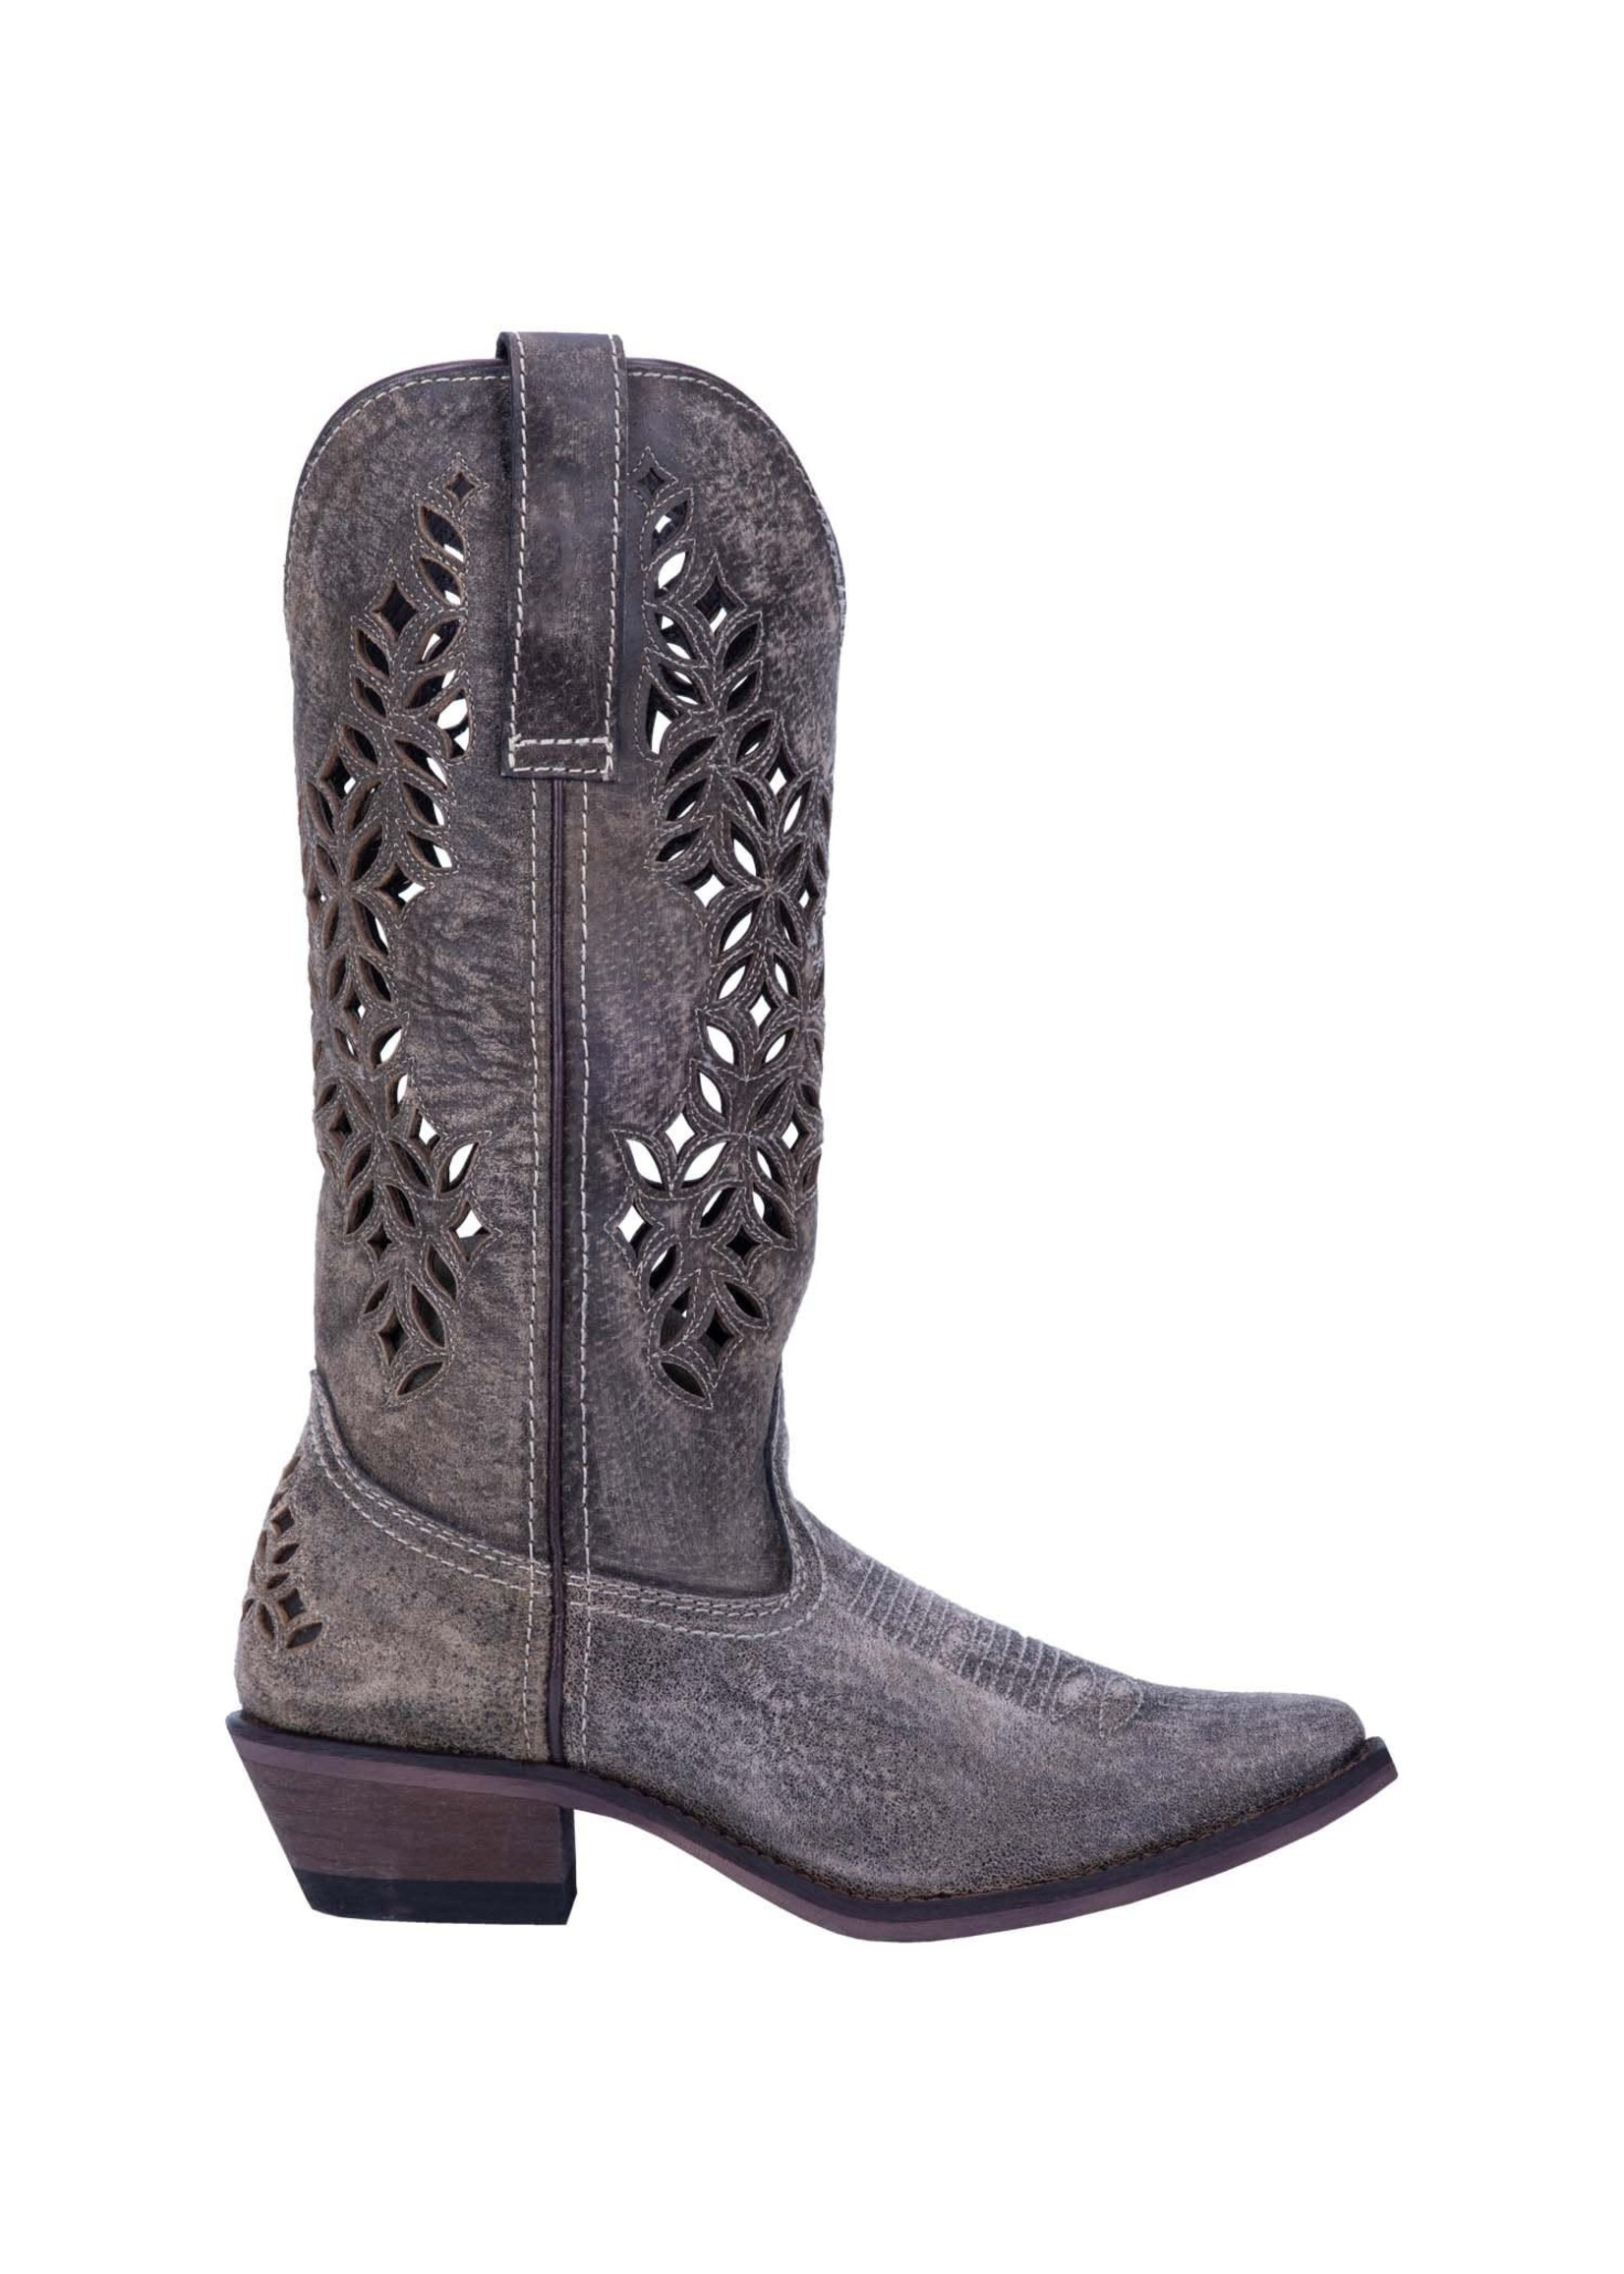 Laredo WOMEN'S CHOPPED OUT LEATHER BOOT 52317